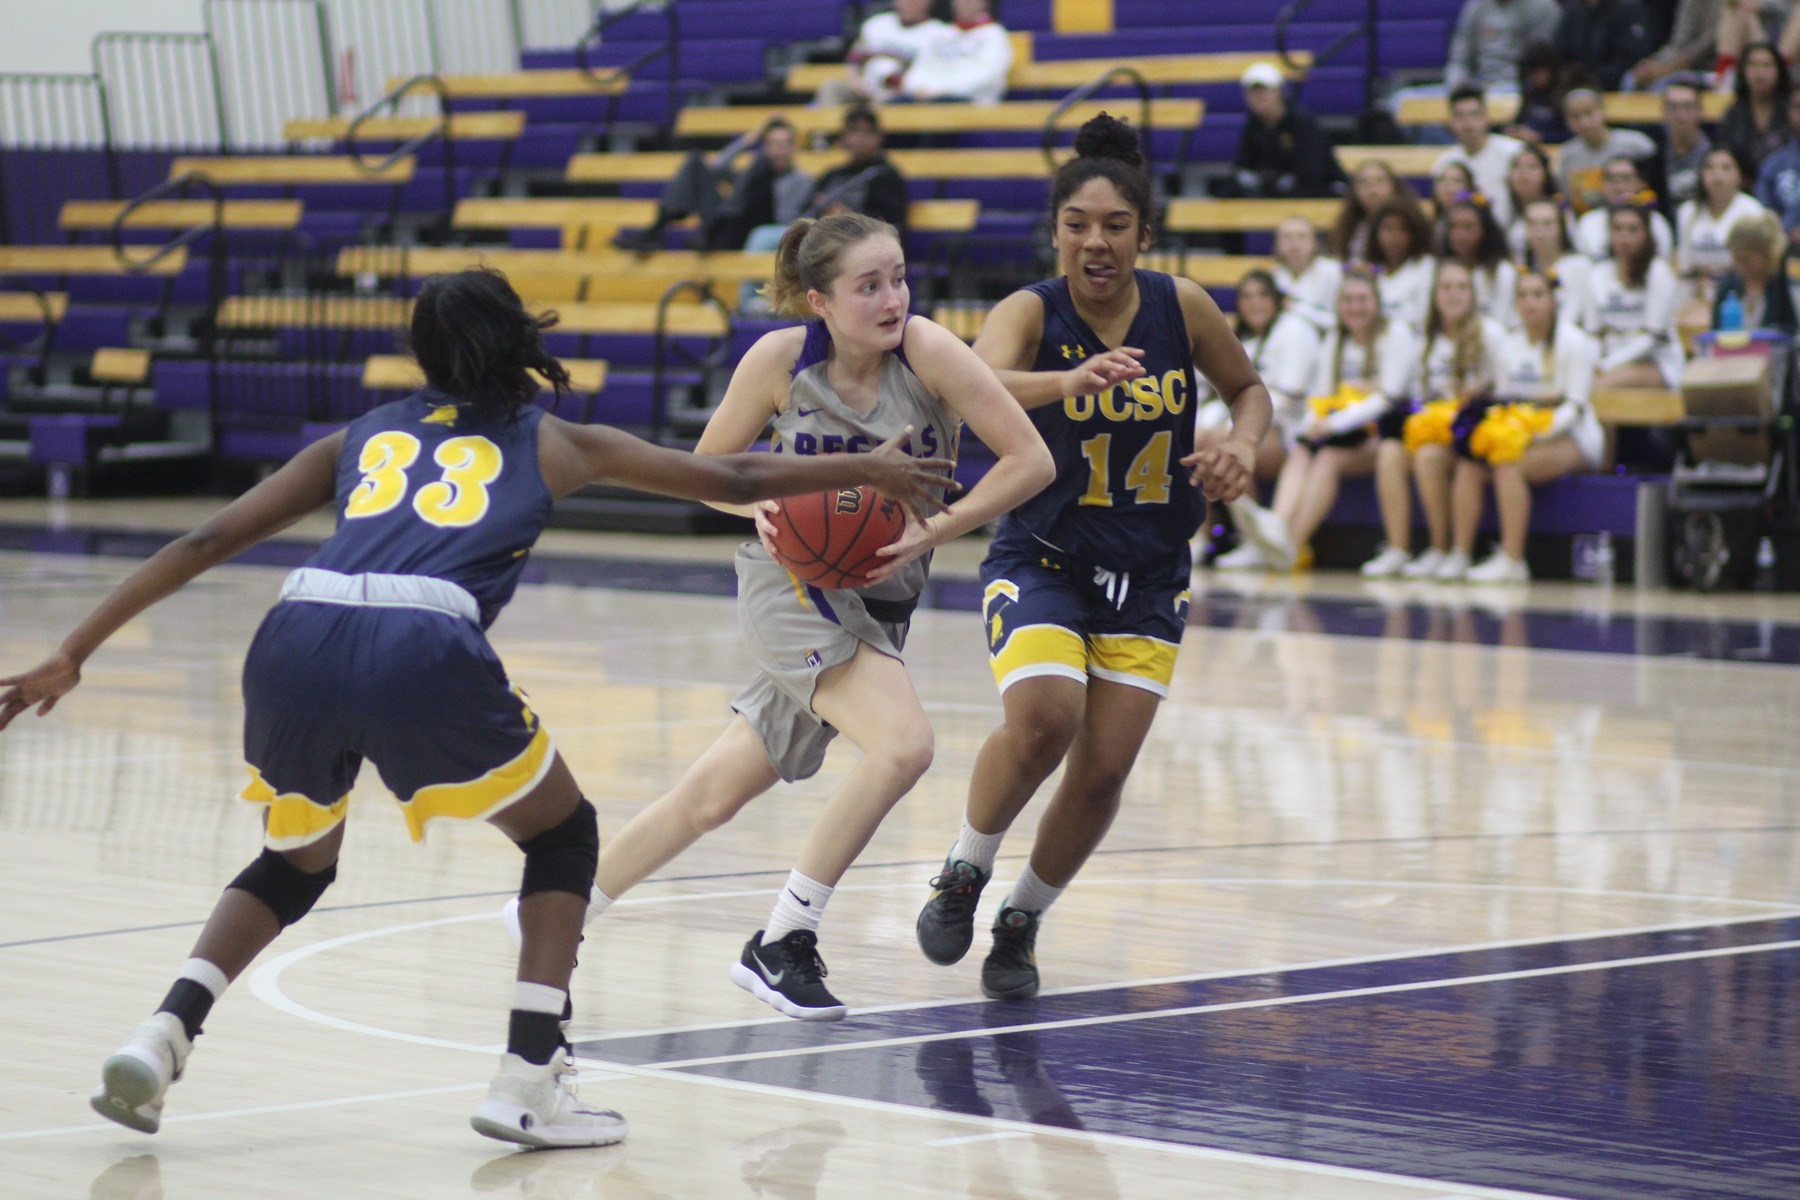 Ruhl Beats the Buzzer to Give Regals 61-58 Win Over Whittier